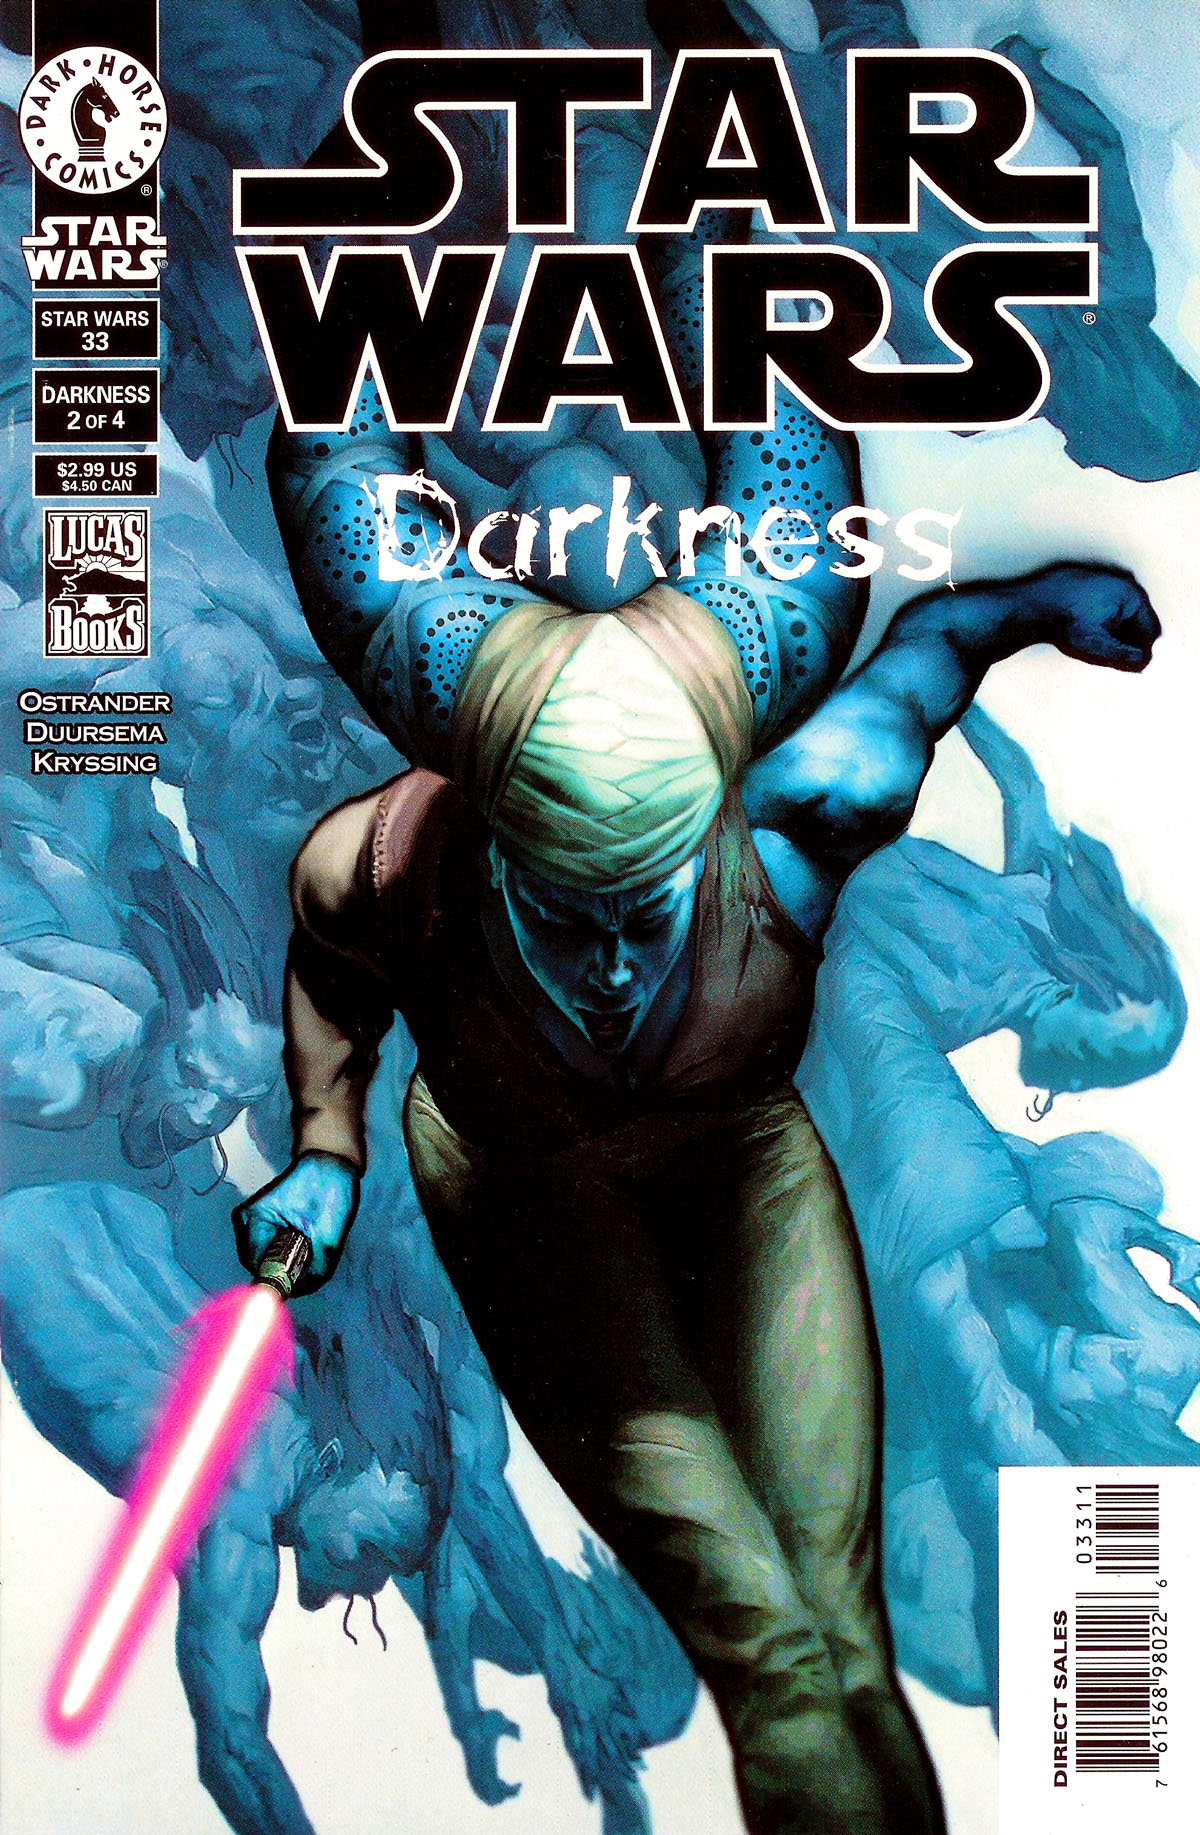 Image result for Aayla secura darkness 2 cover